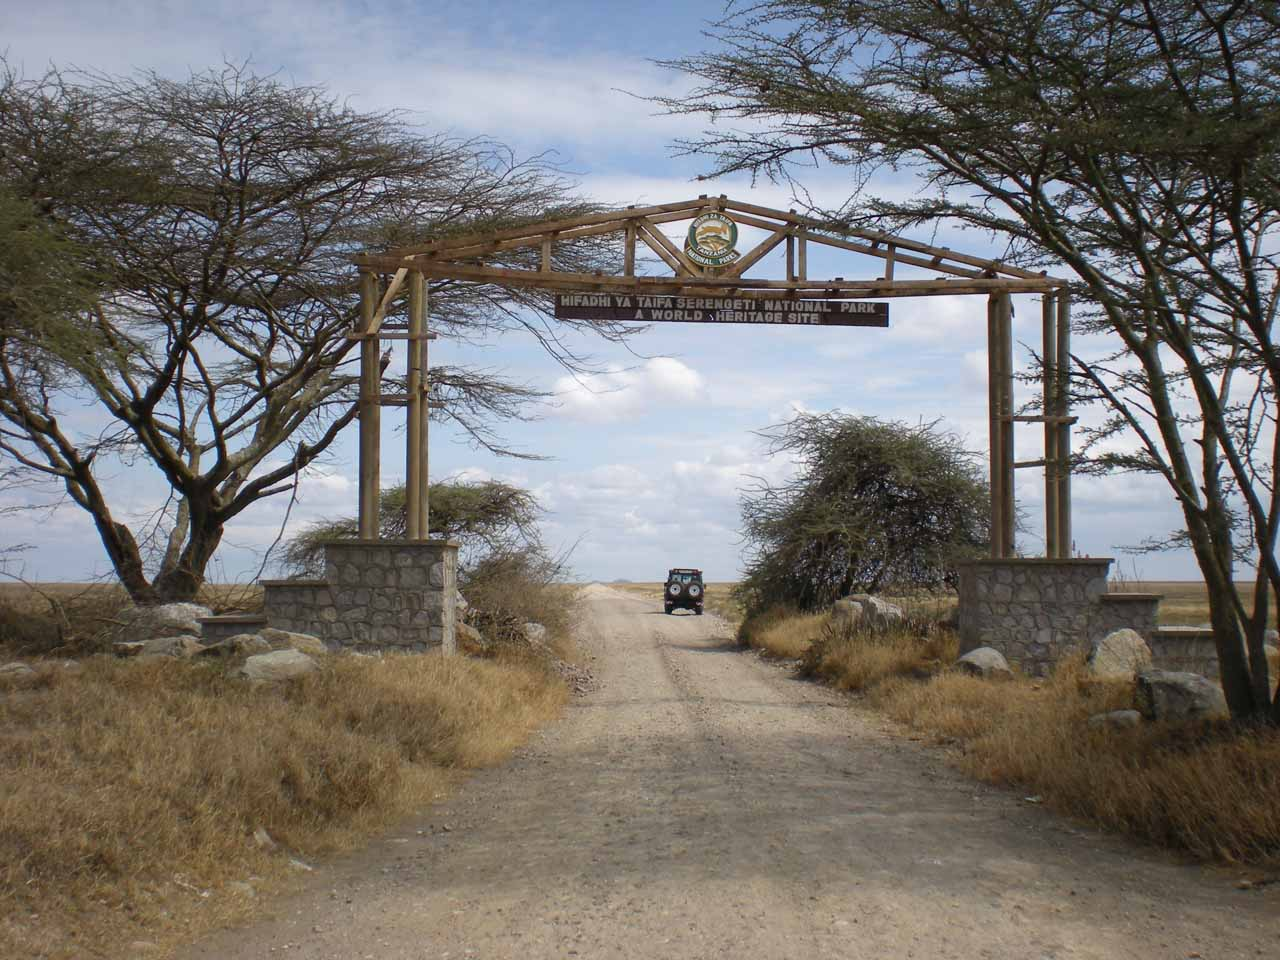 Leaving Ngorongoro Conservation Area and entering the Serengeti National Park